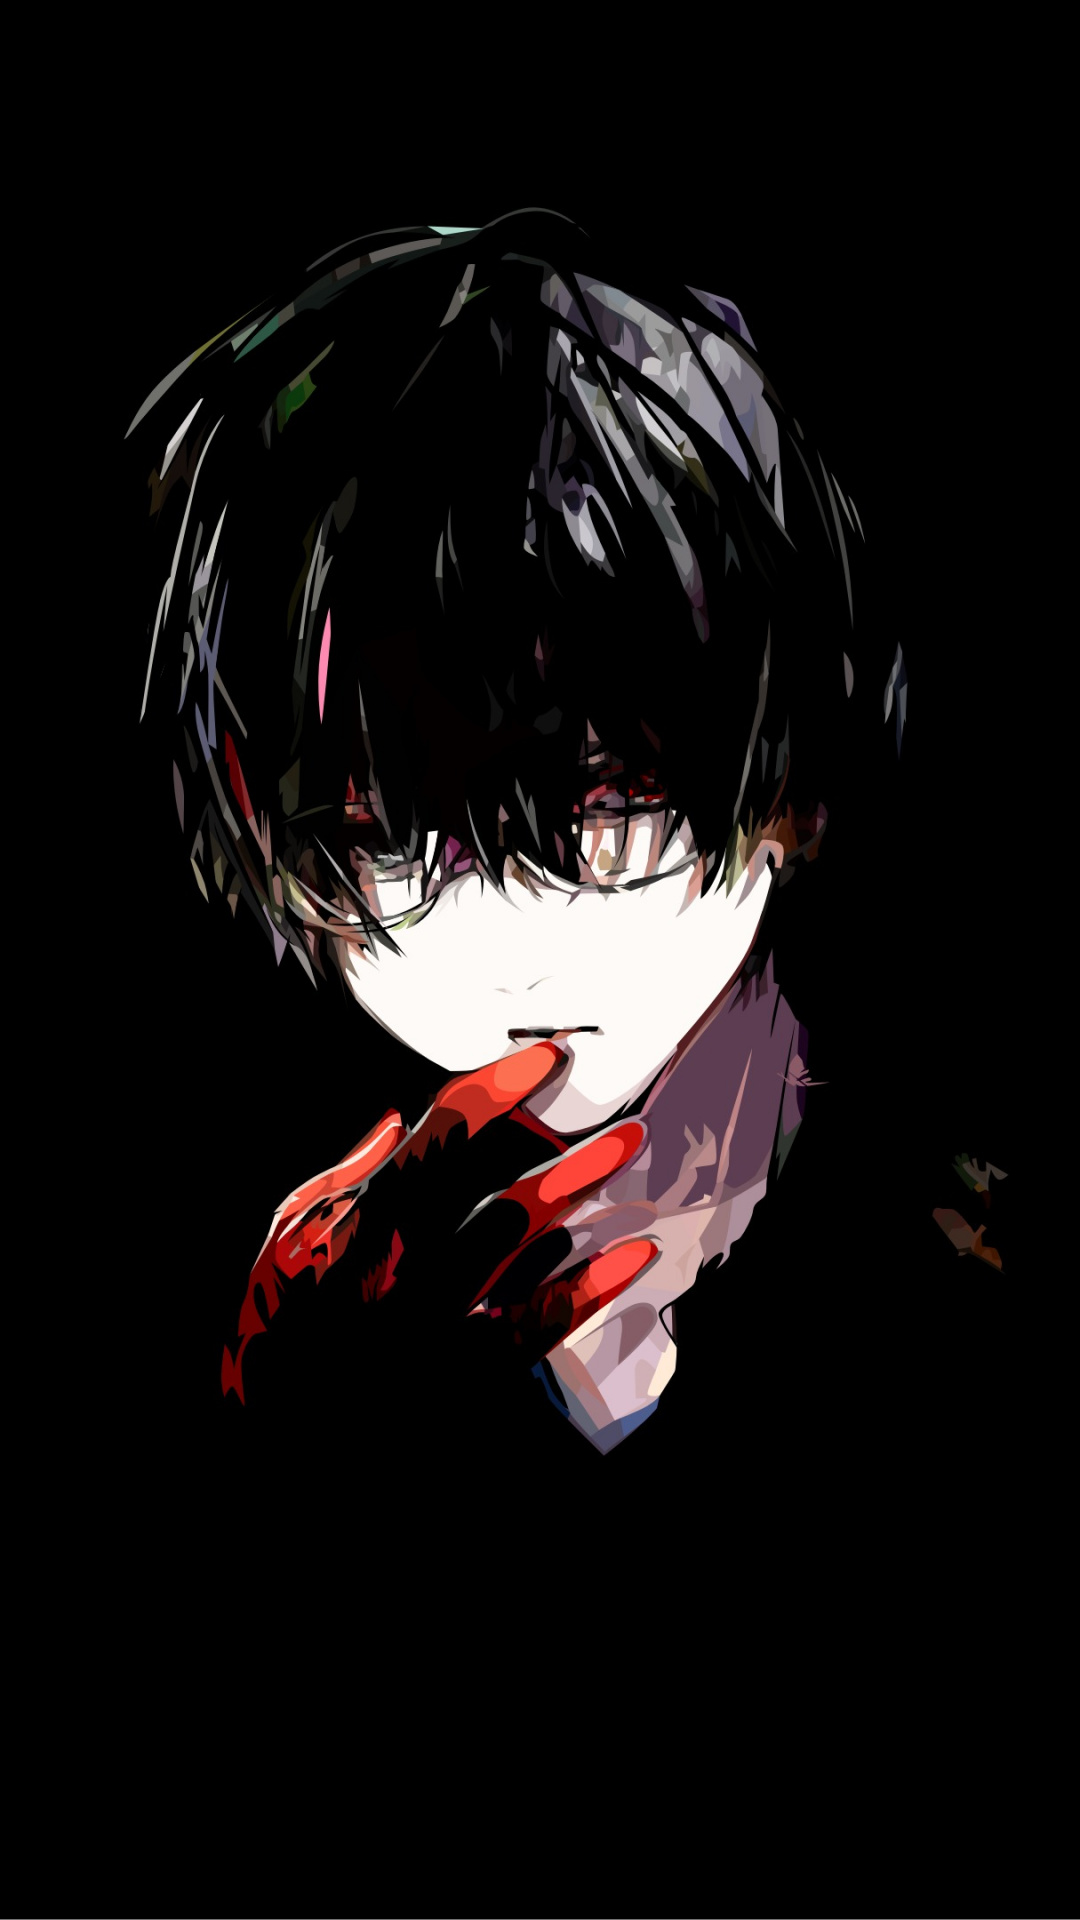 Tokyo Ghoul Anime Black Darkness Fictional Character Boy Sad Walpaper Anime 1080x1920 Download Hd Wallpaper Wallpapertip